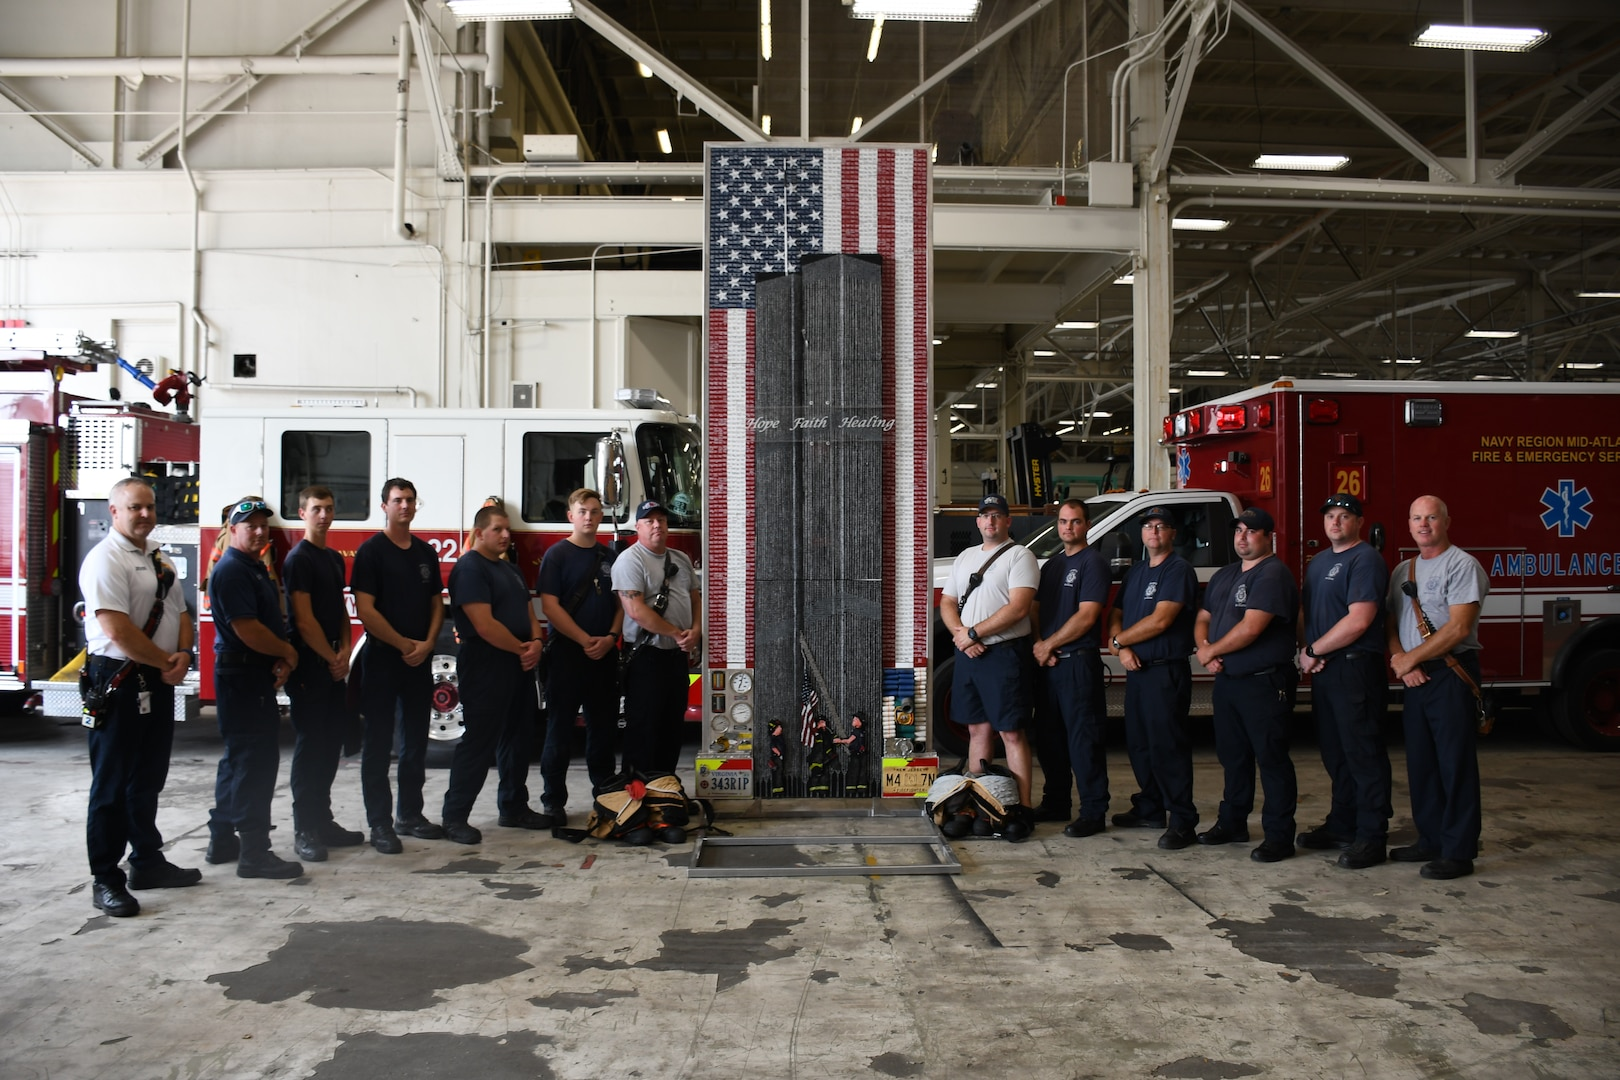 Members of the Navy Region Mid-Atlantic Fire and Emergency Services along with the Sept. 11 memorial tribute artwork designed by NNSY's SurgeMain Sailor, Machinist Mate Chief Petty Officer (MMC) Joseph Pisano . The tribute piece is made up of 30,000+ drywall and trim screws, 2,978 one-inch wooden blocks, the base, a simulated fire truck, is constructed of authentic gauges, cranks, handles, hoses, chevrons, and plates from a decommissioned fire truck and it stands 12 foot tall by four foot wide.